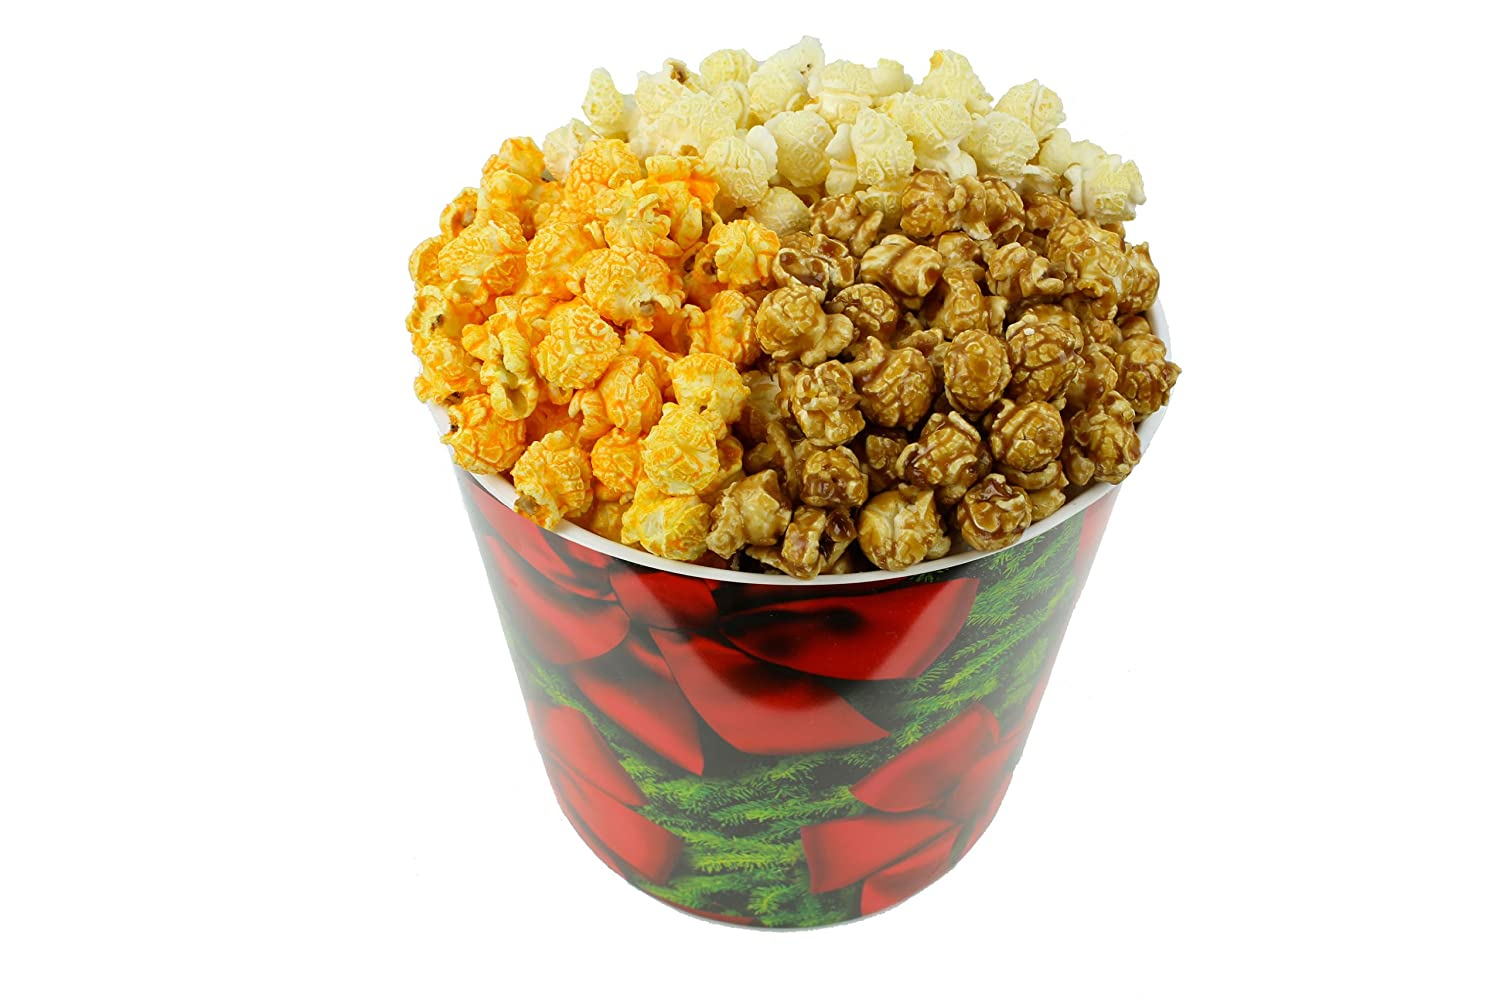 Signature Popcorn, 1-Gallon Holidays Red Bow Reusable Plastic Tin - Butter, Caramel and Cheddar Cheese